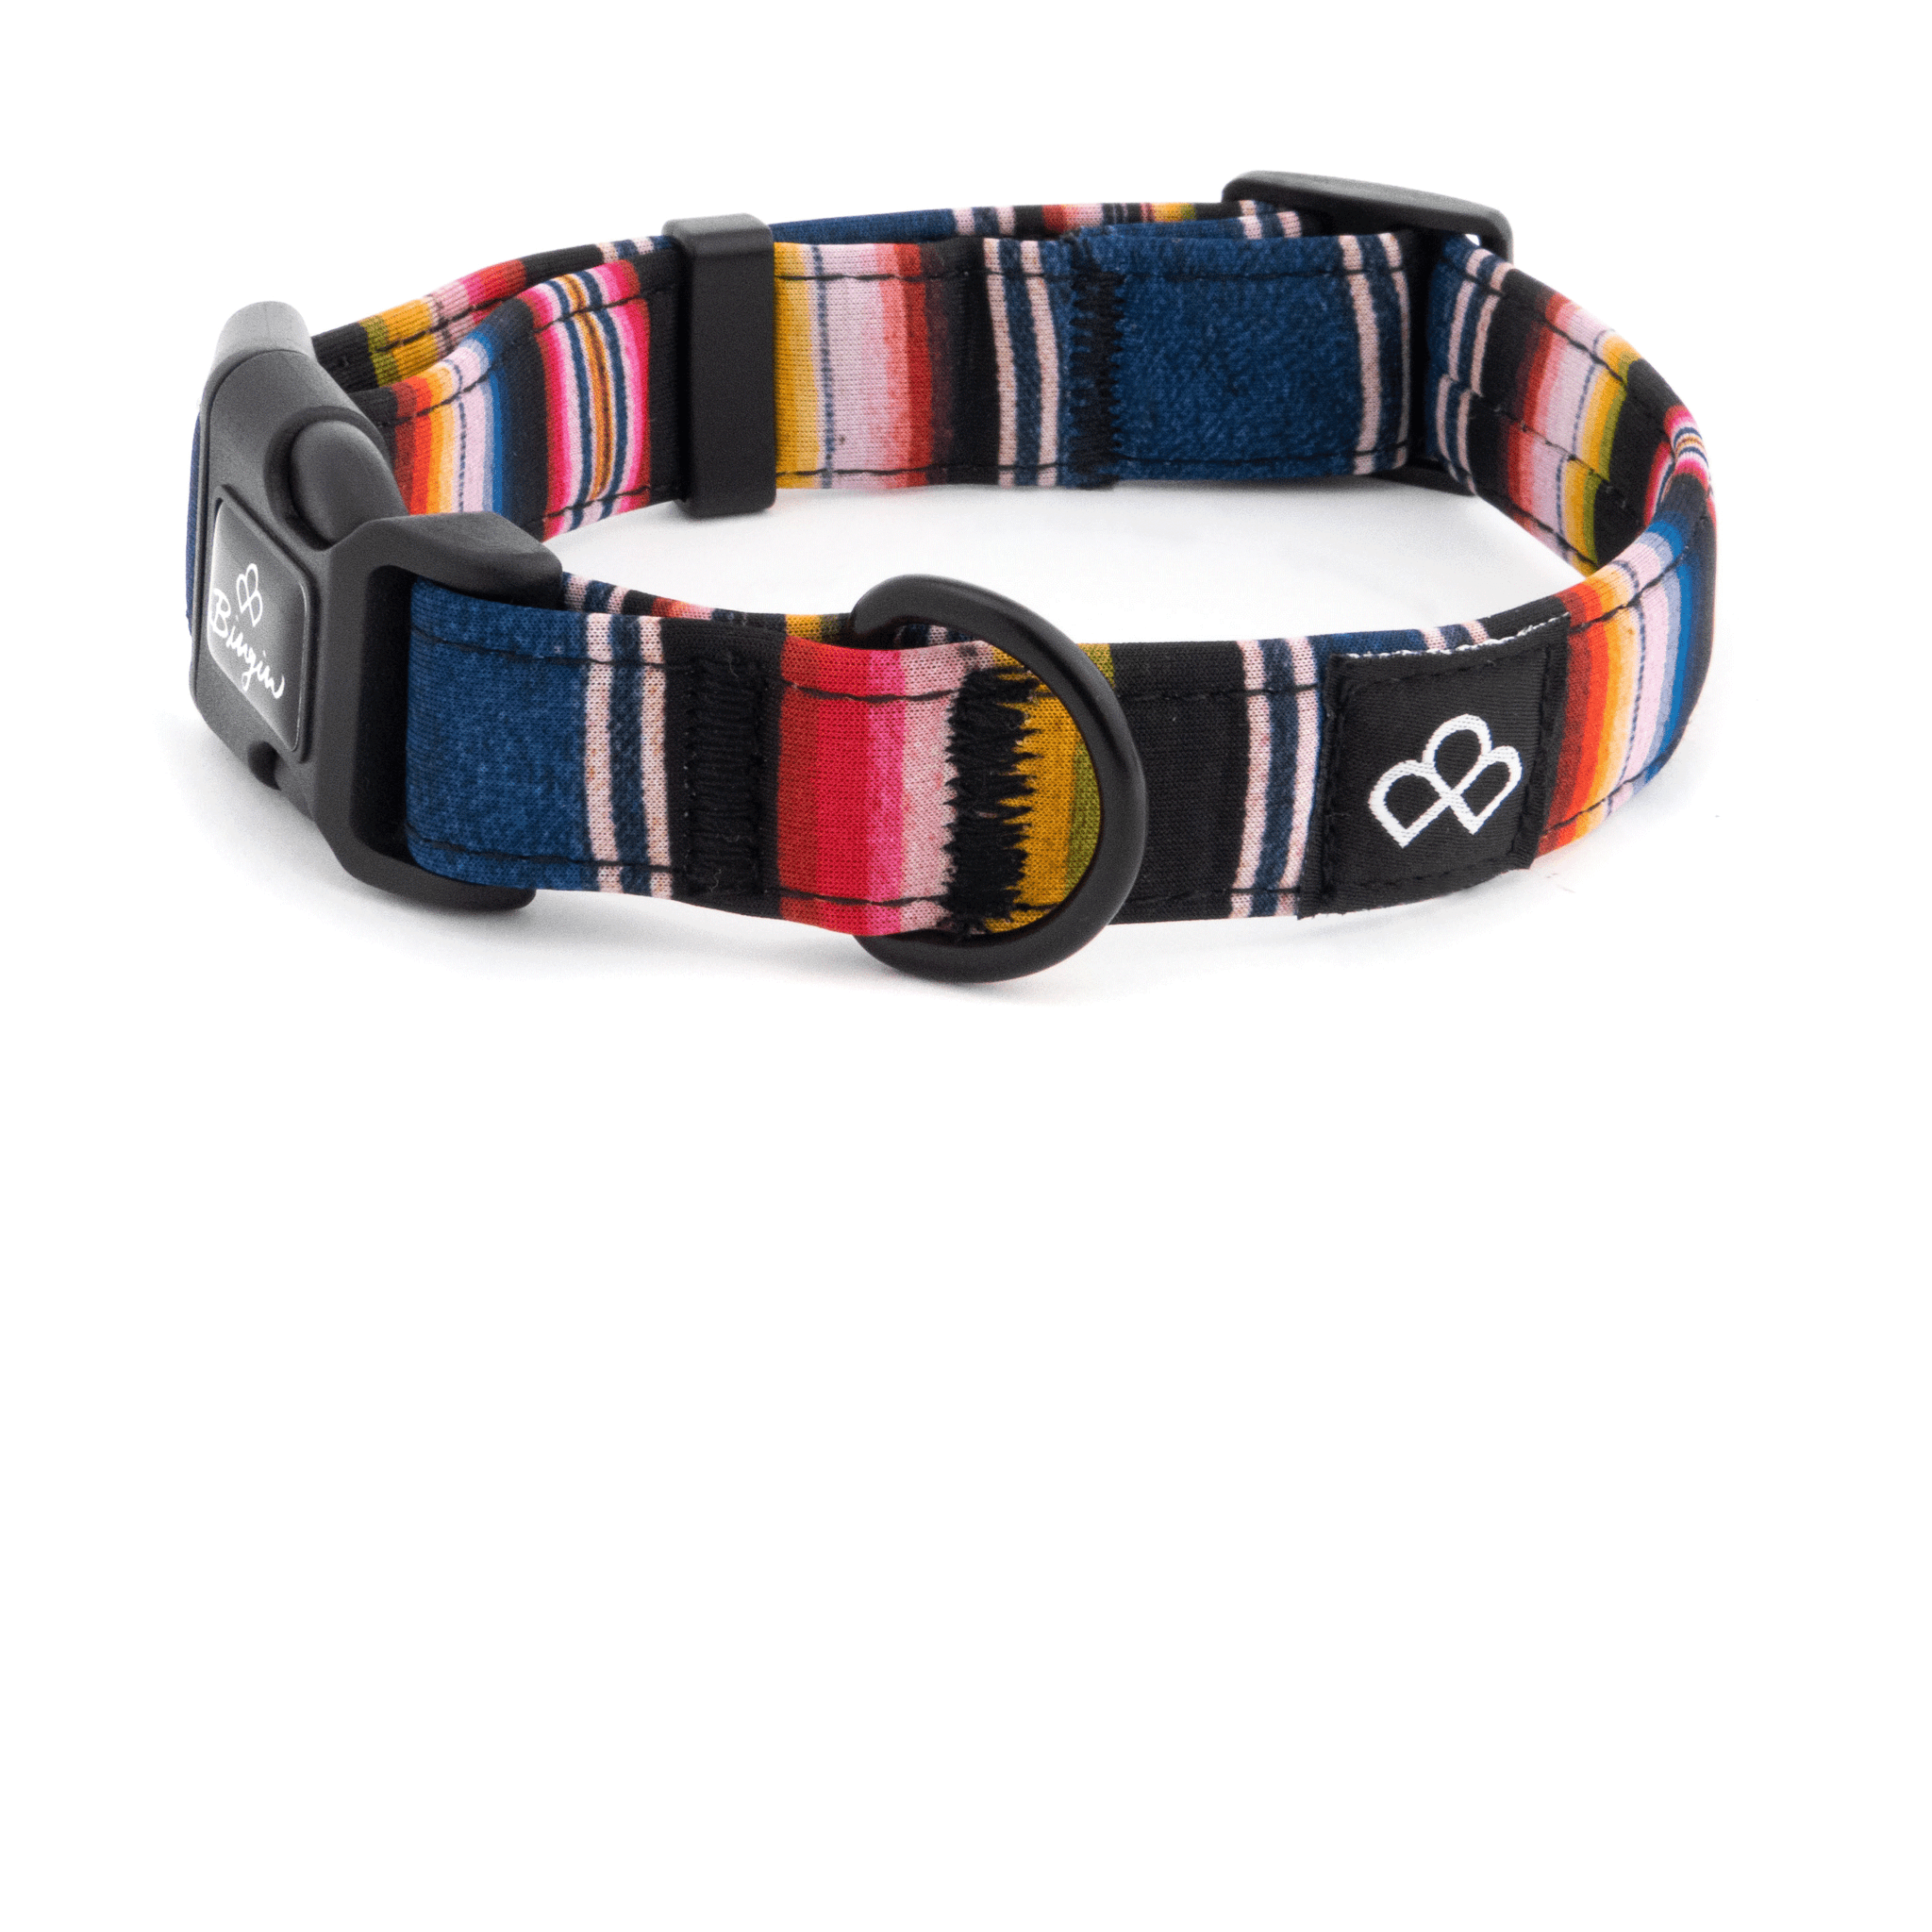 Bingin Dog 'Los Amigos' serape waterproof dog collars; side view. A vibrant and timeless, classic serape print.